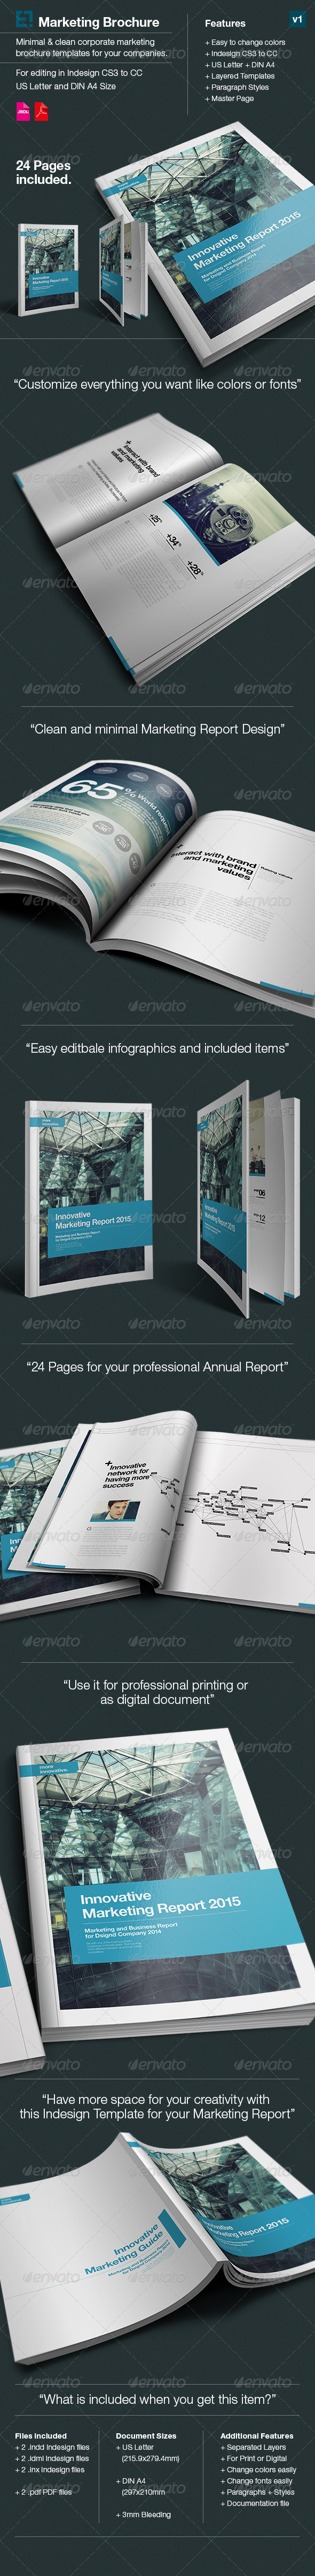 GraphicRiver Swiss Design Marketing Report Dsignd v2 6753788